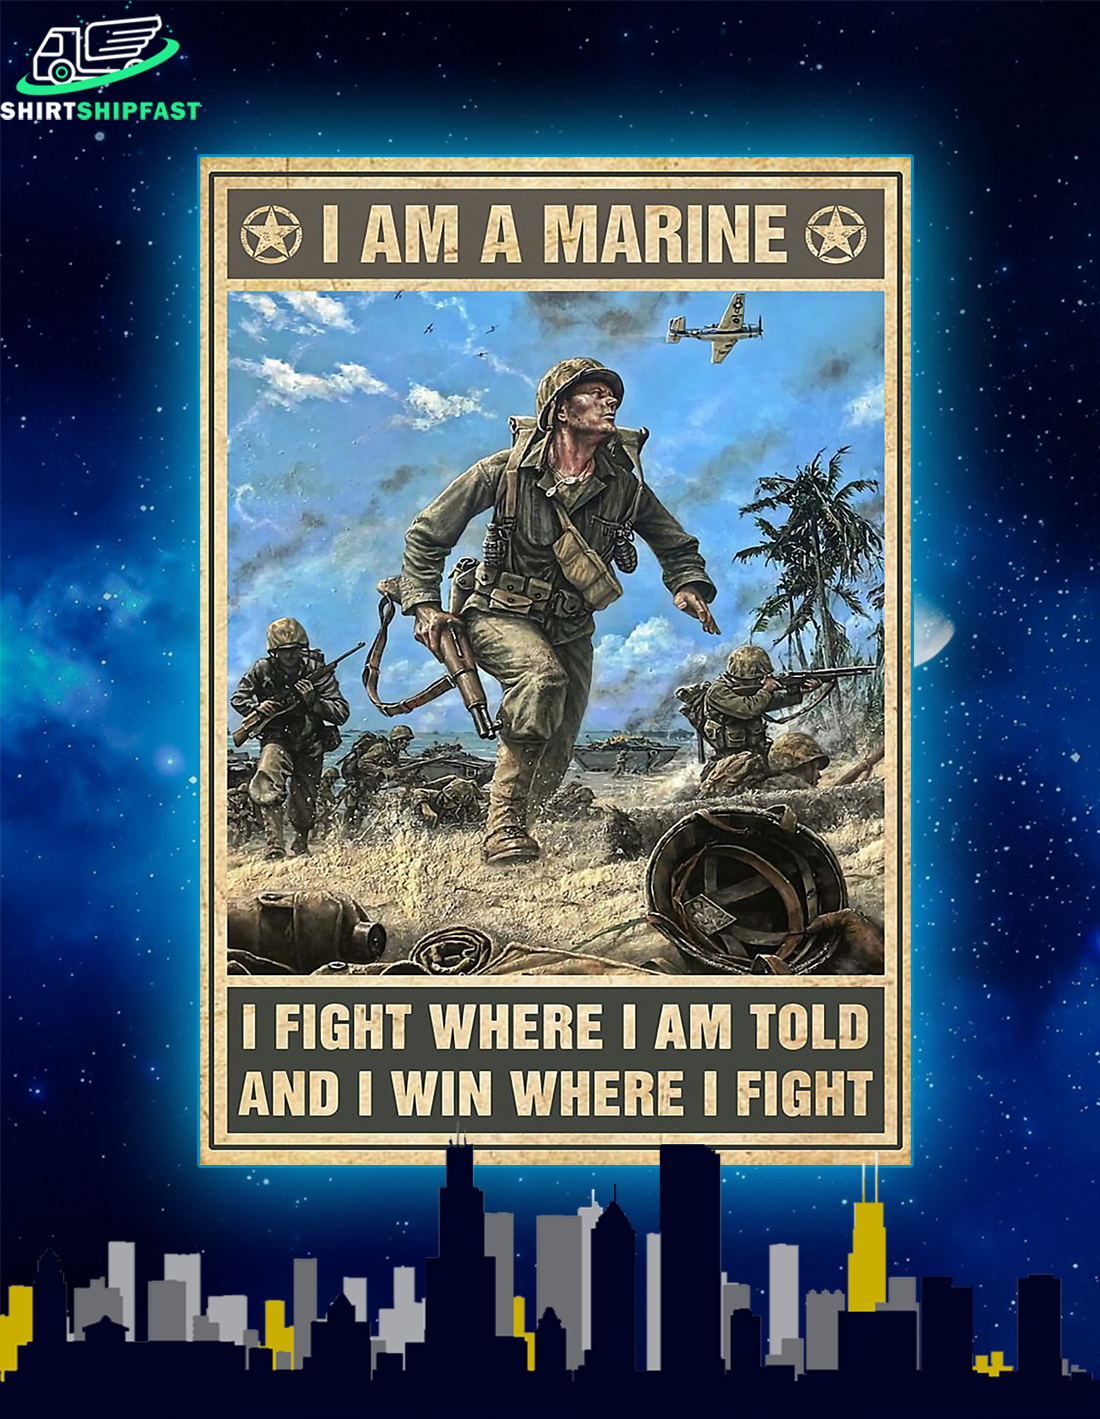 I am a marine I fight where I am told and I win where I fight poster - Picture 1